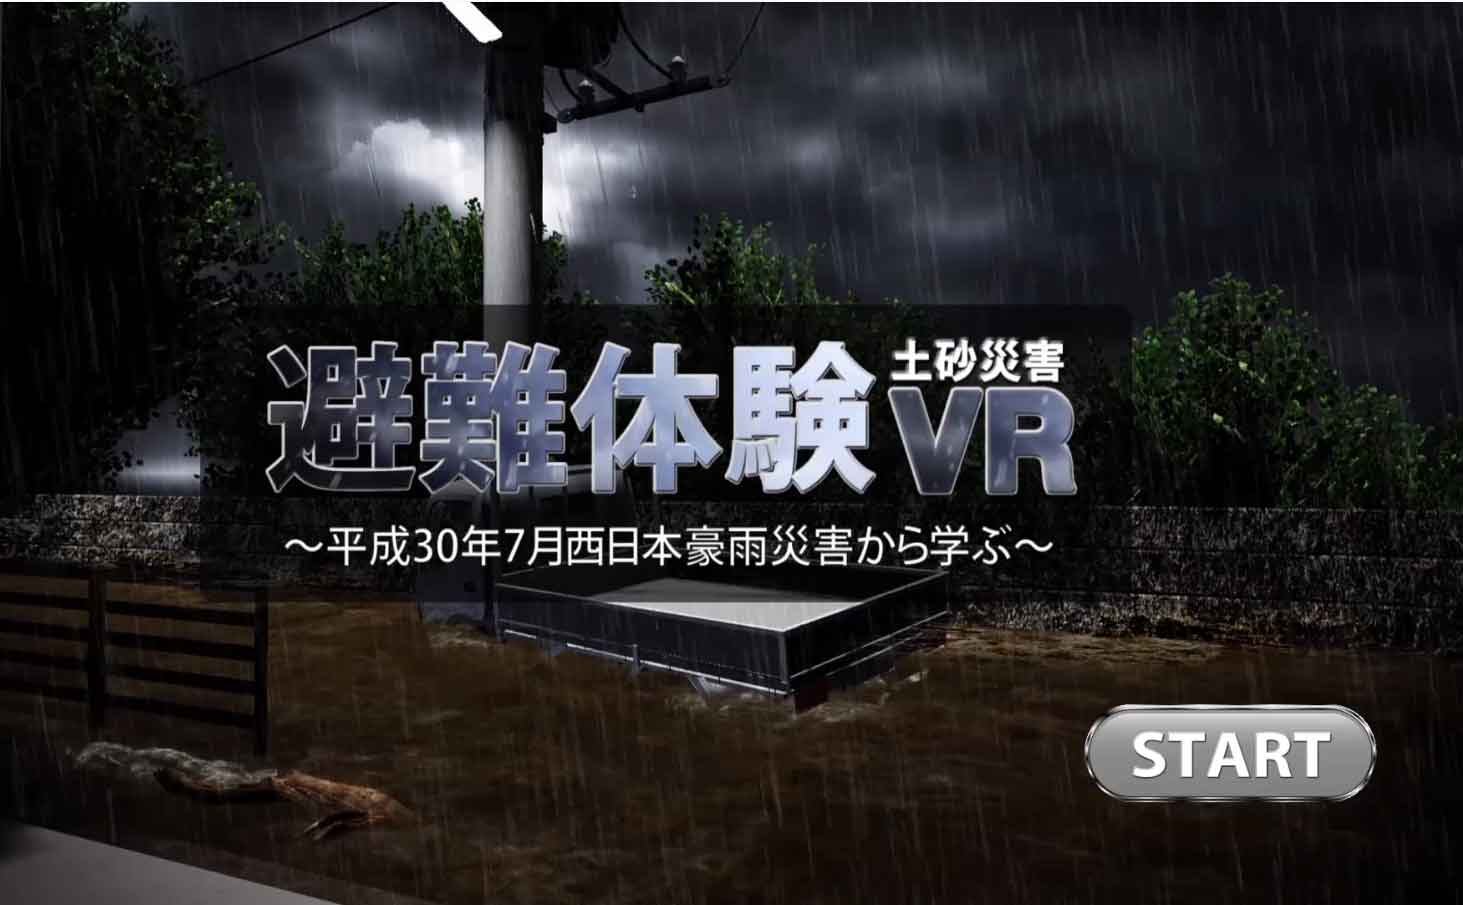 Rikei Starts to provide VR Content that Simulates Landslide Disaster~Nation's First Disaster Experience/Training VR Jointly Developed with University, and Local Government~